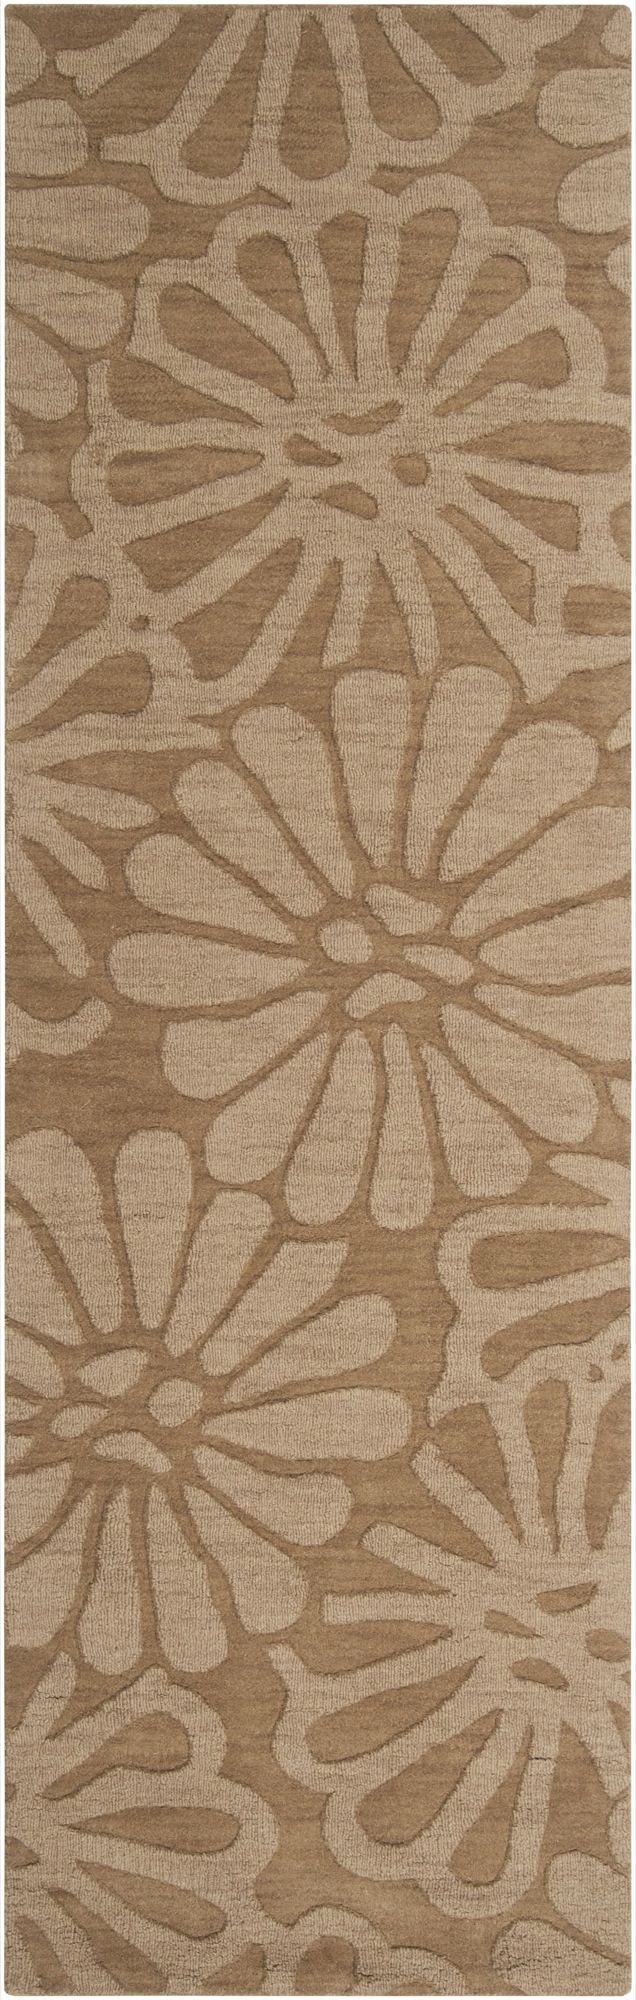 surya mystique country & floral area rug collection